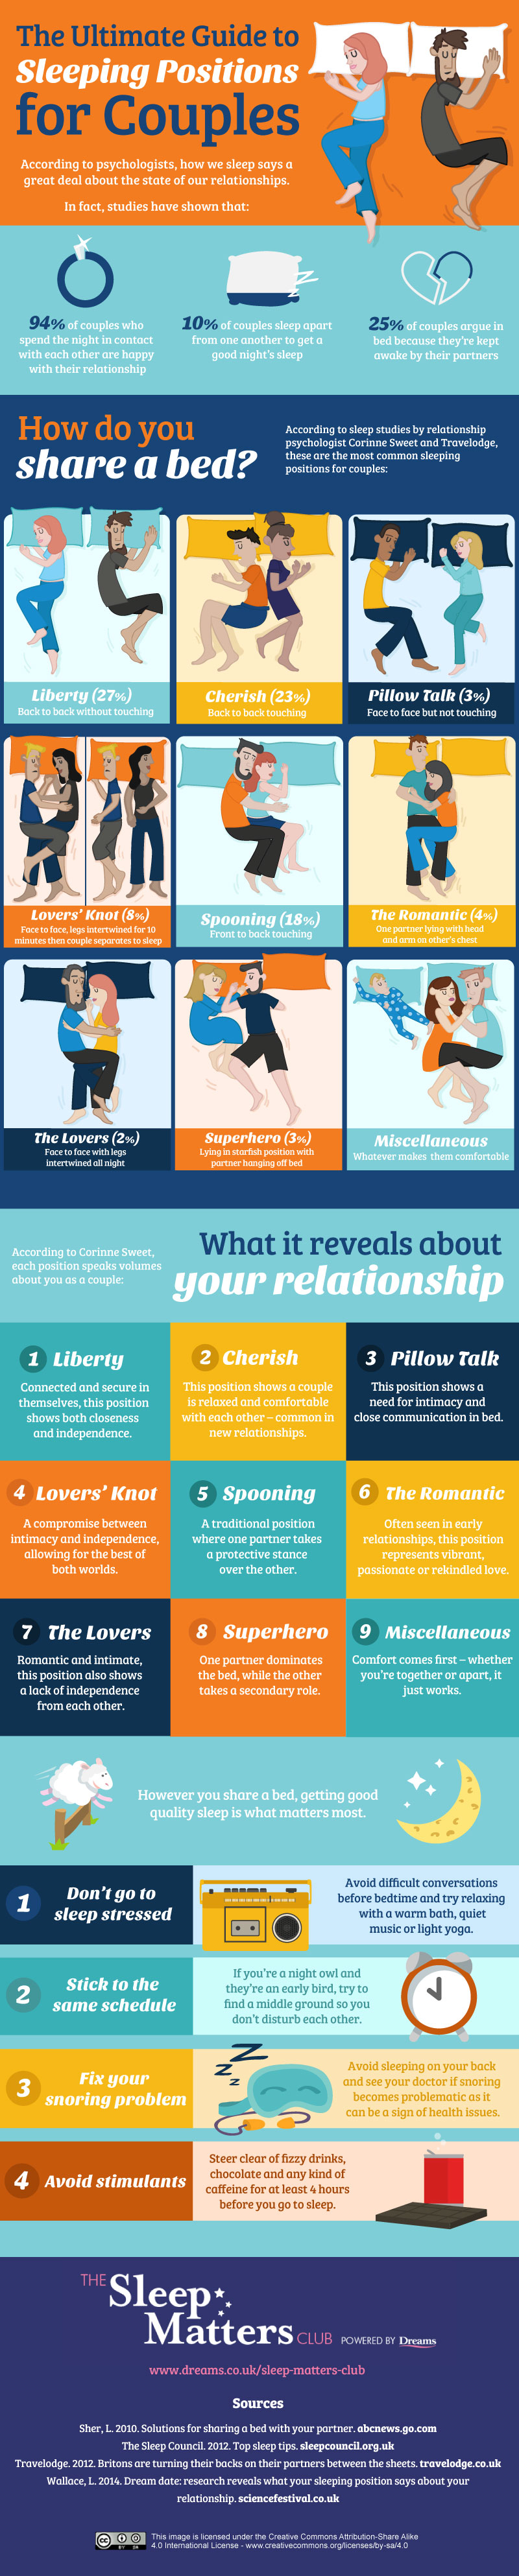 Ultimate Guide to Sleeping Positions for Couples